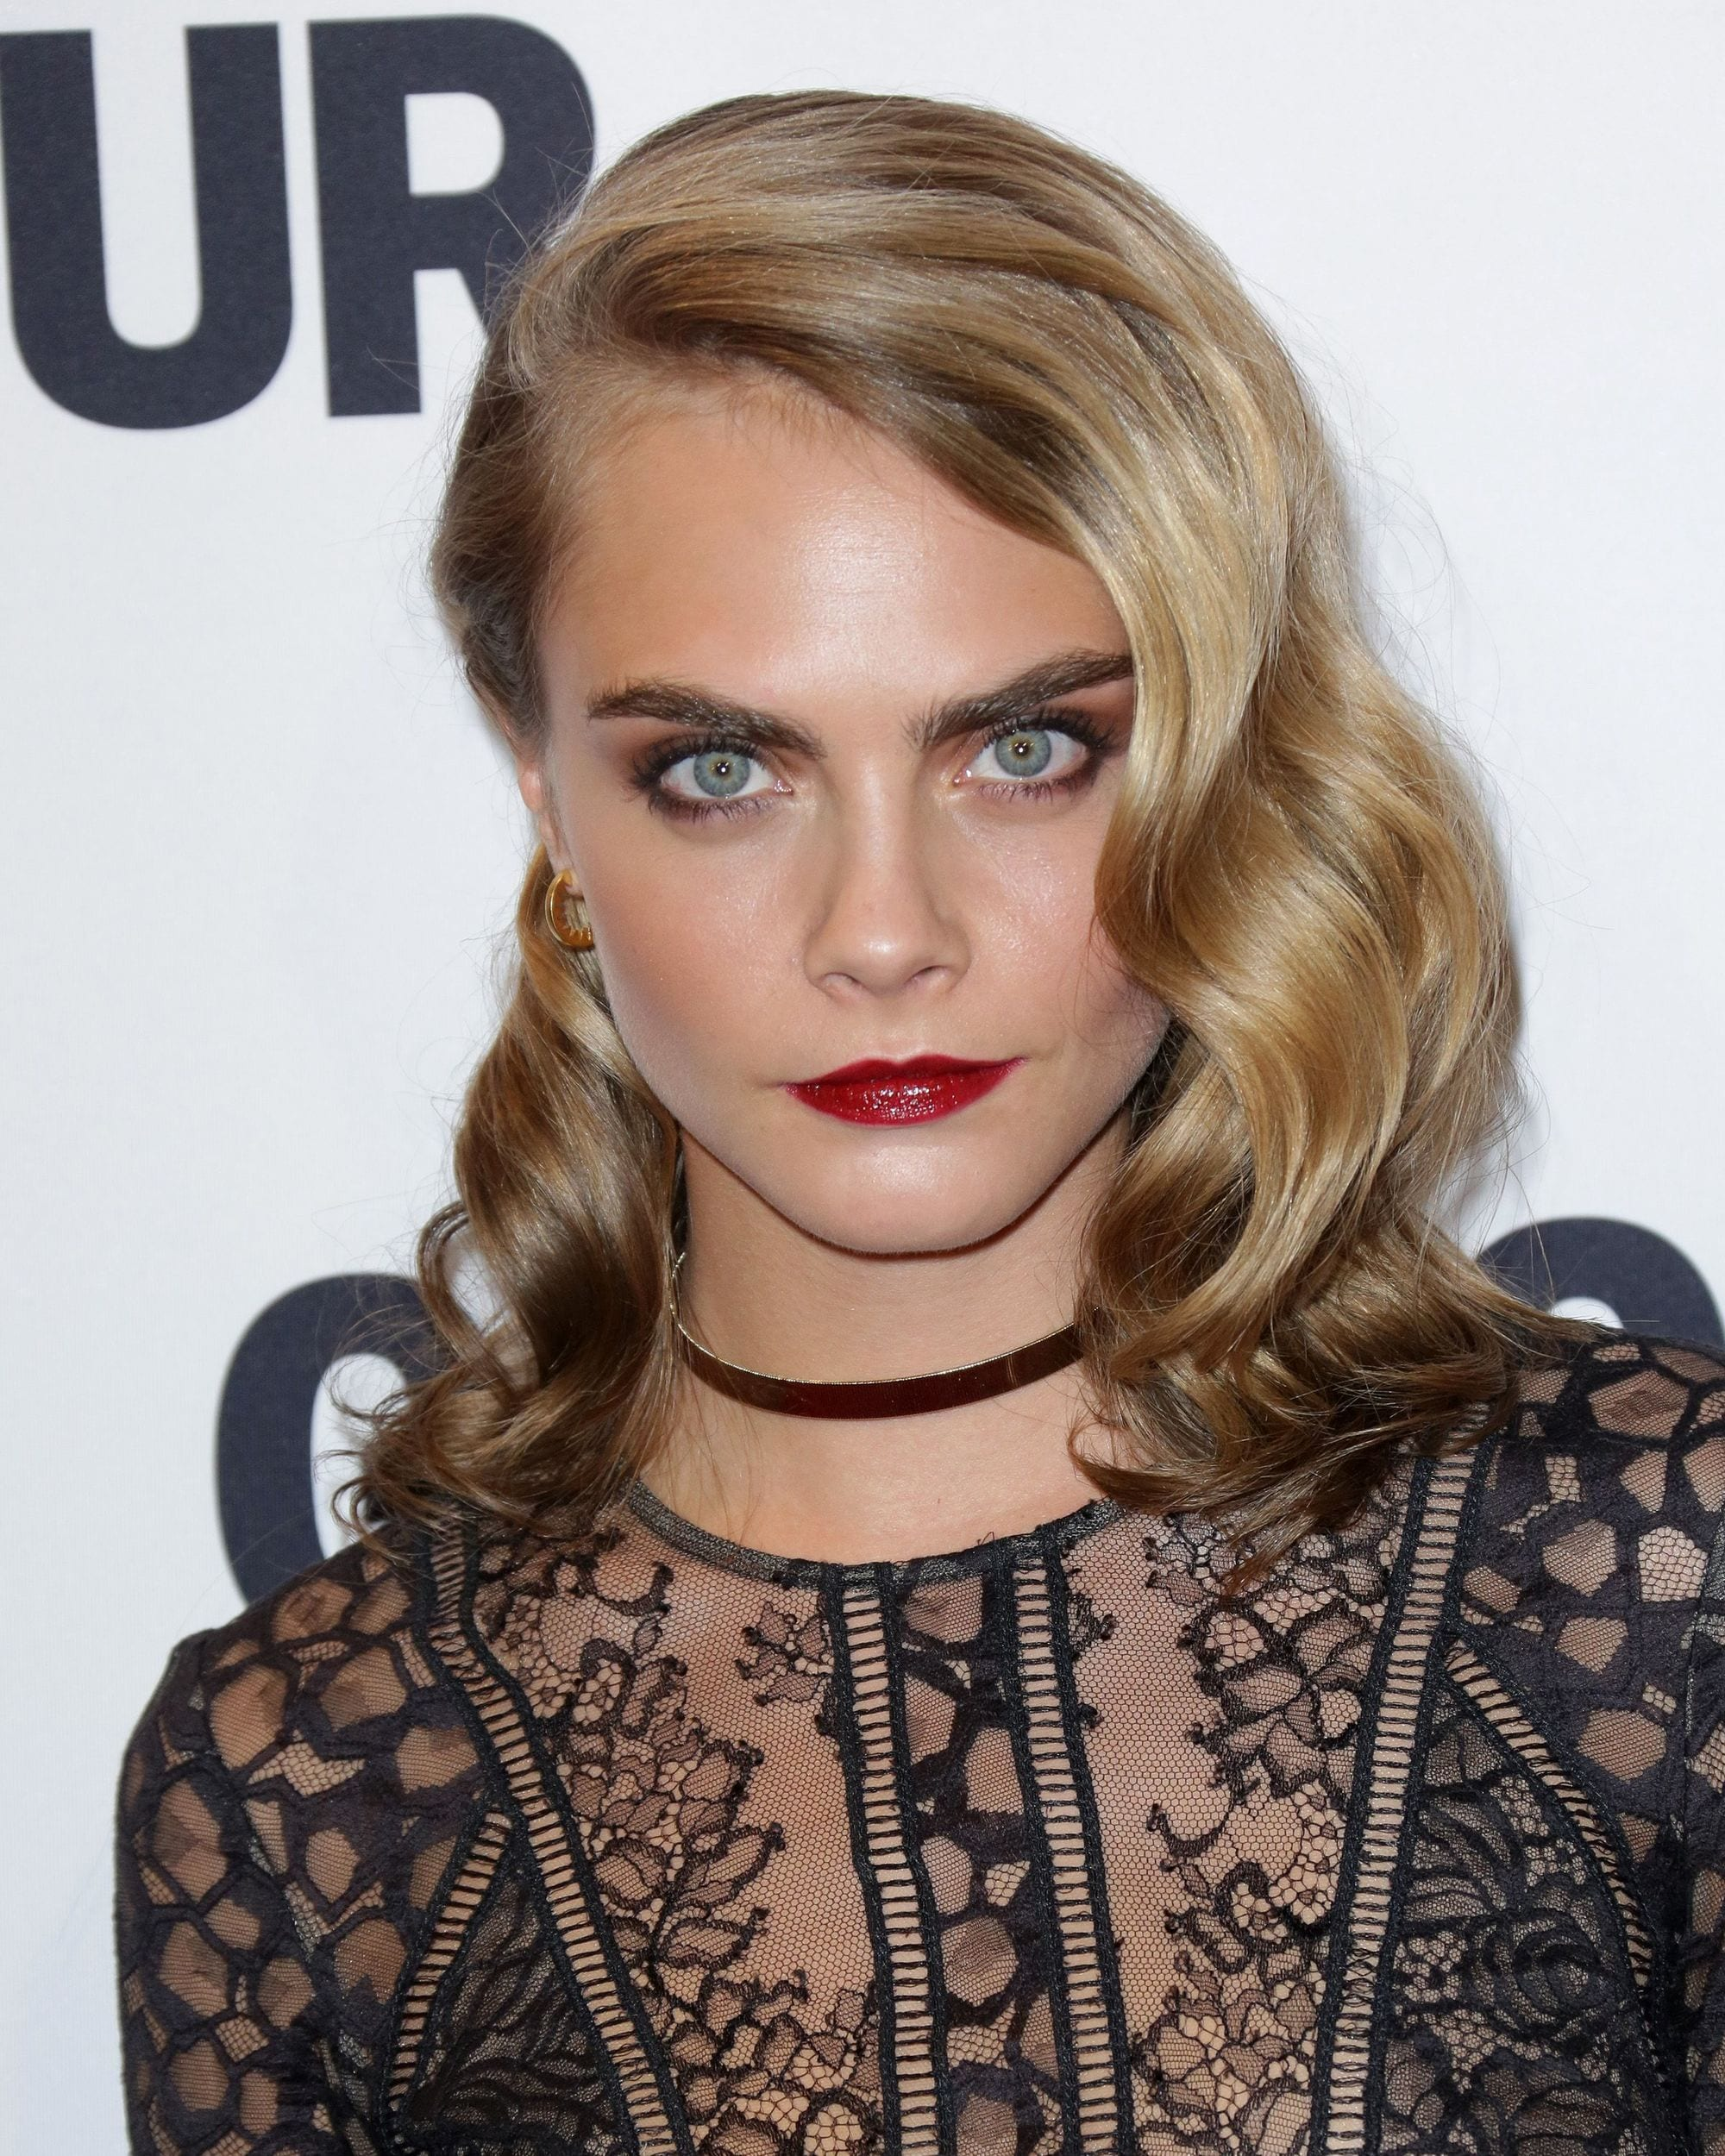 Dirty blonde hair - Cara Delevingne wears her hair with a side part and hollywood waves finish